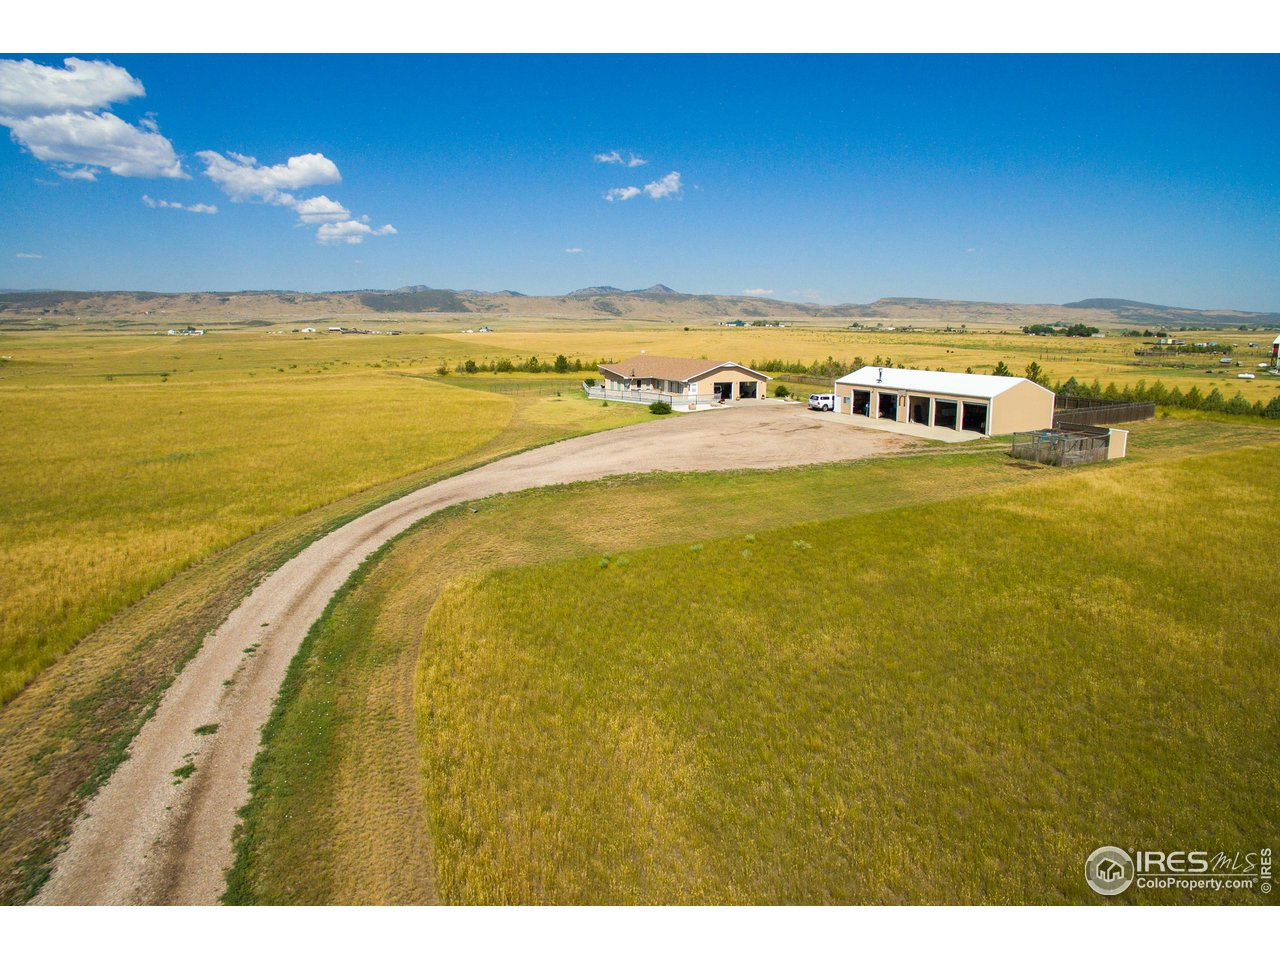 7901 N. County Road 19, Fort Collins CO 80524